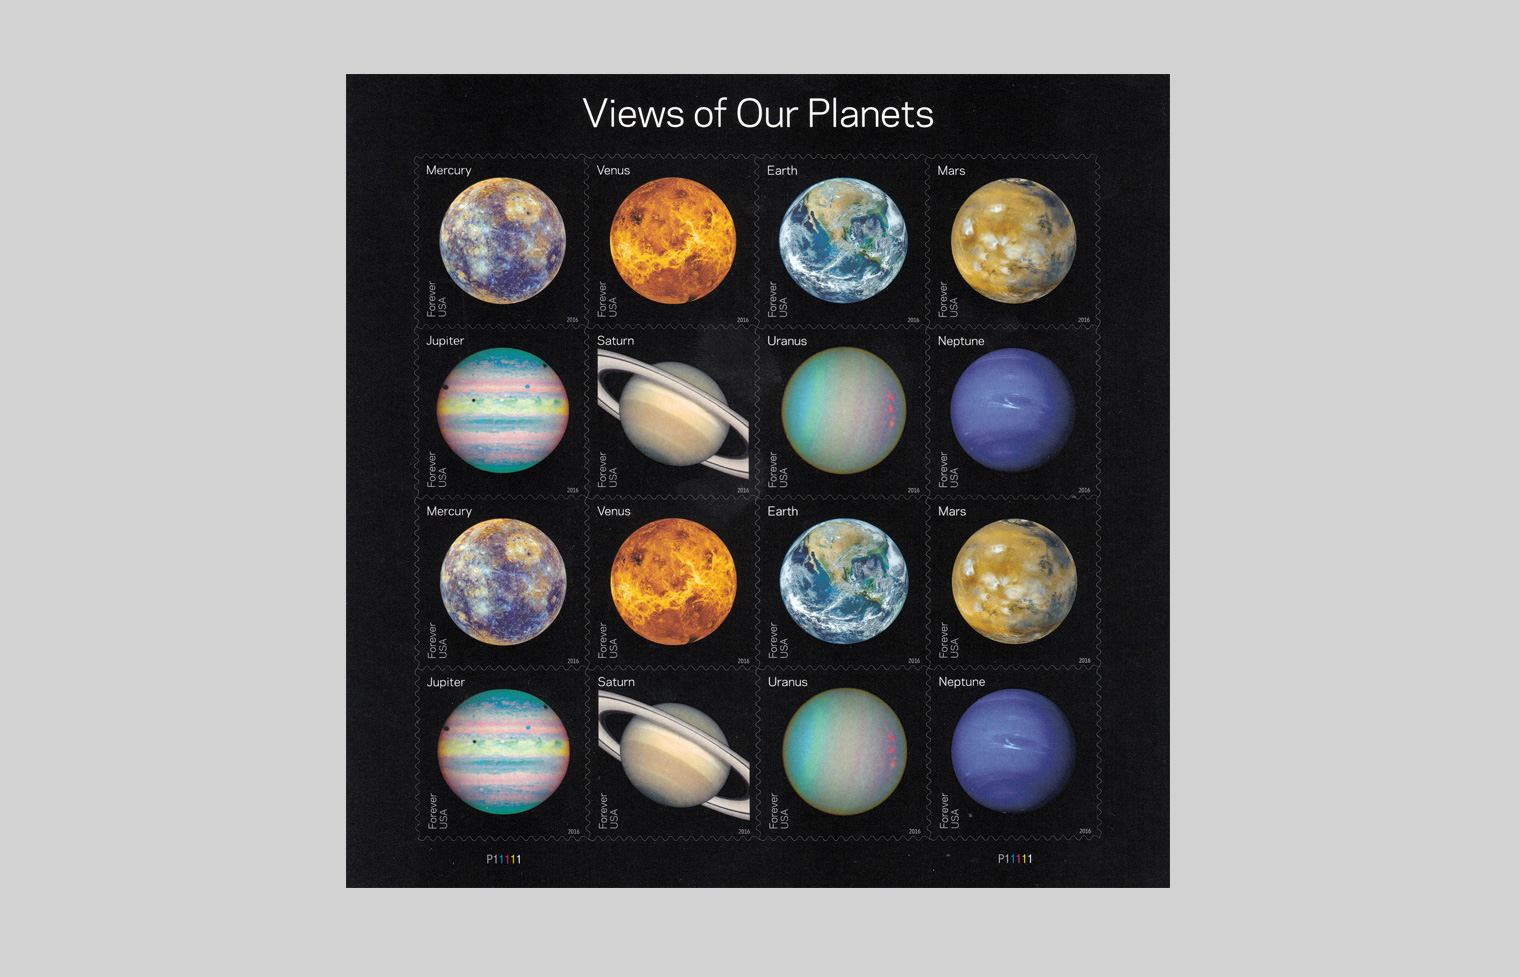 Views of Our Planets